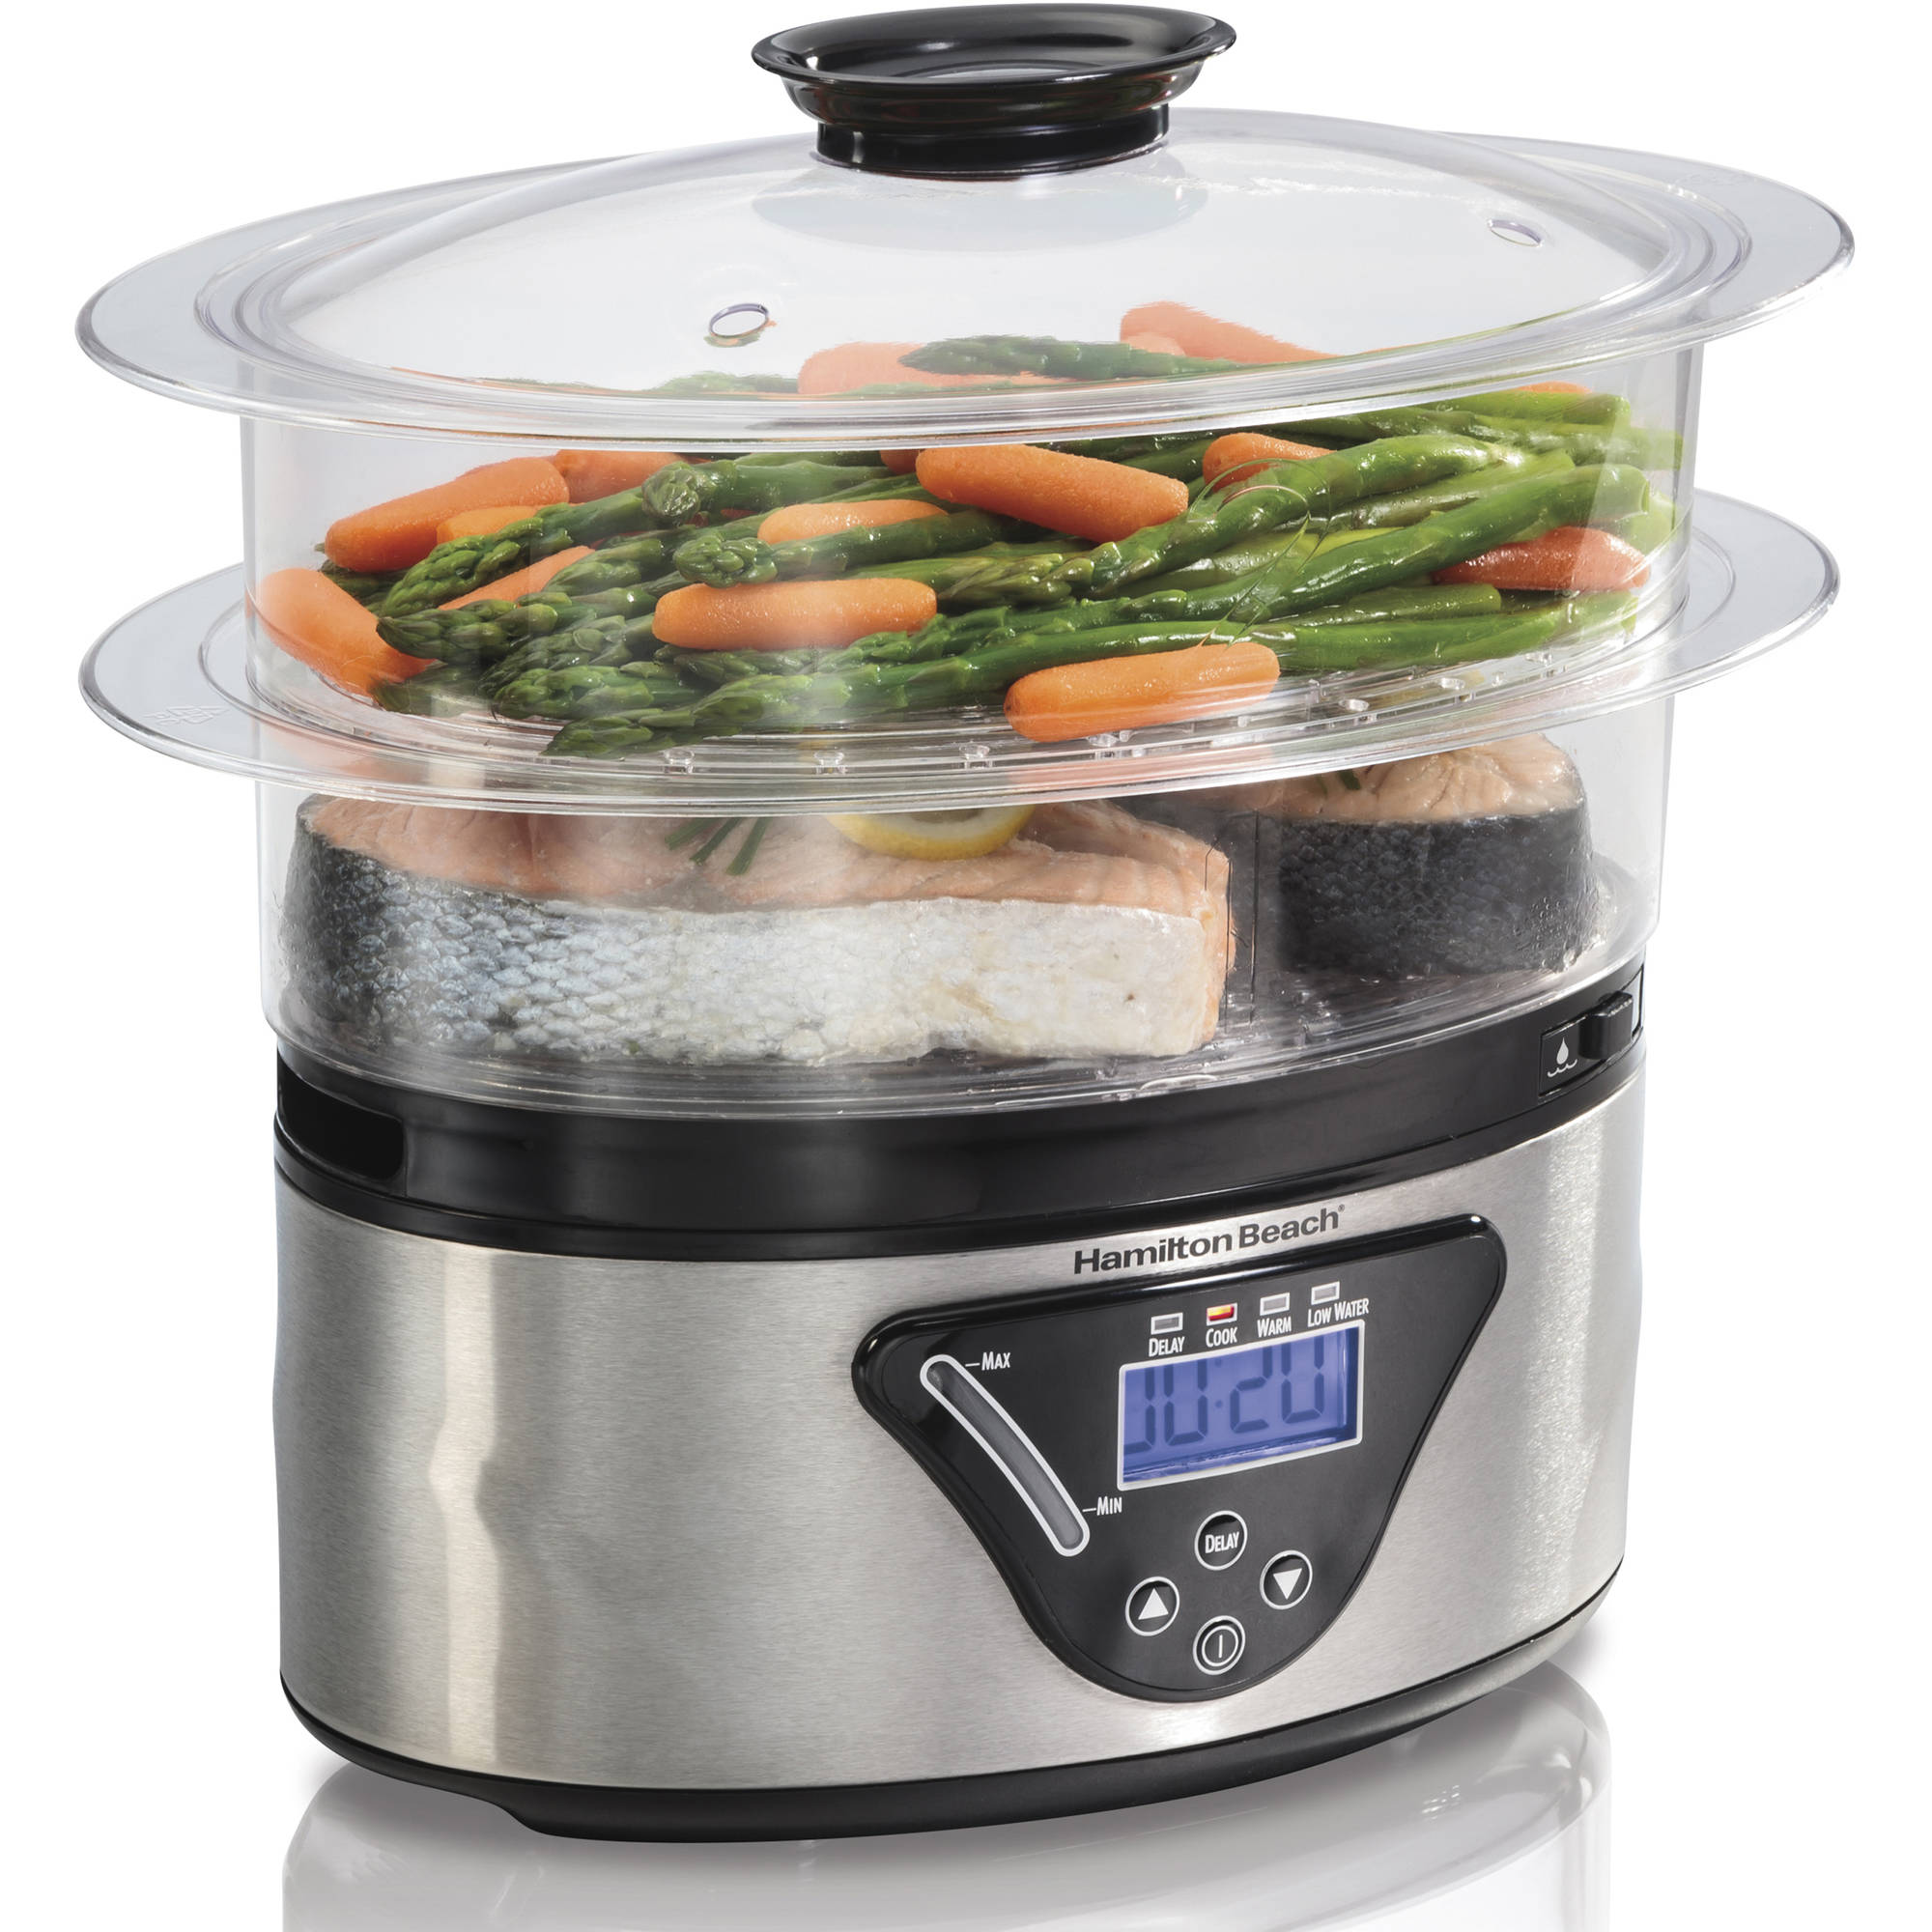 Refurbished Hamilton Beach 5.5 Quart Digital Steamer | Model# R1520